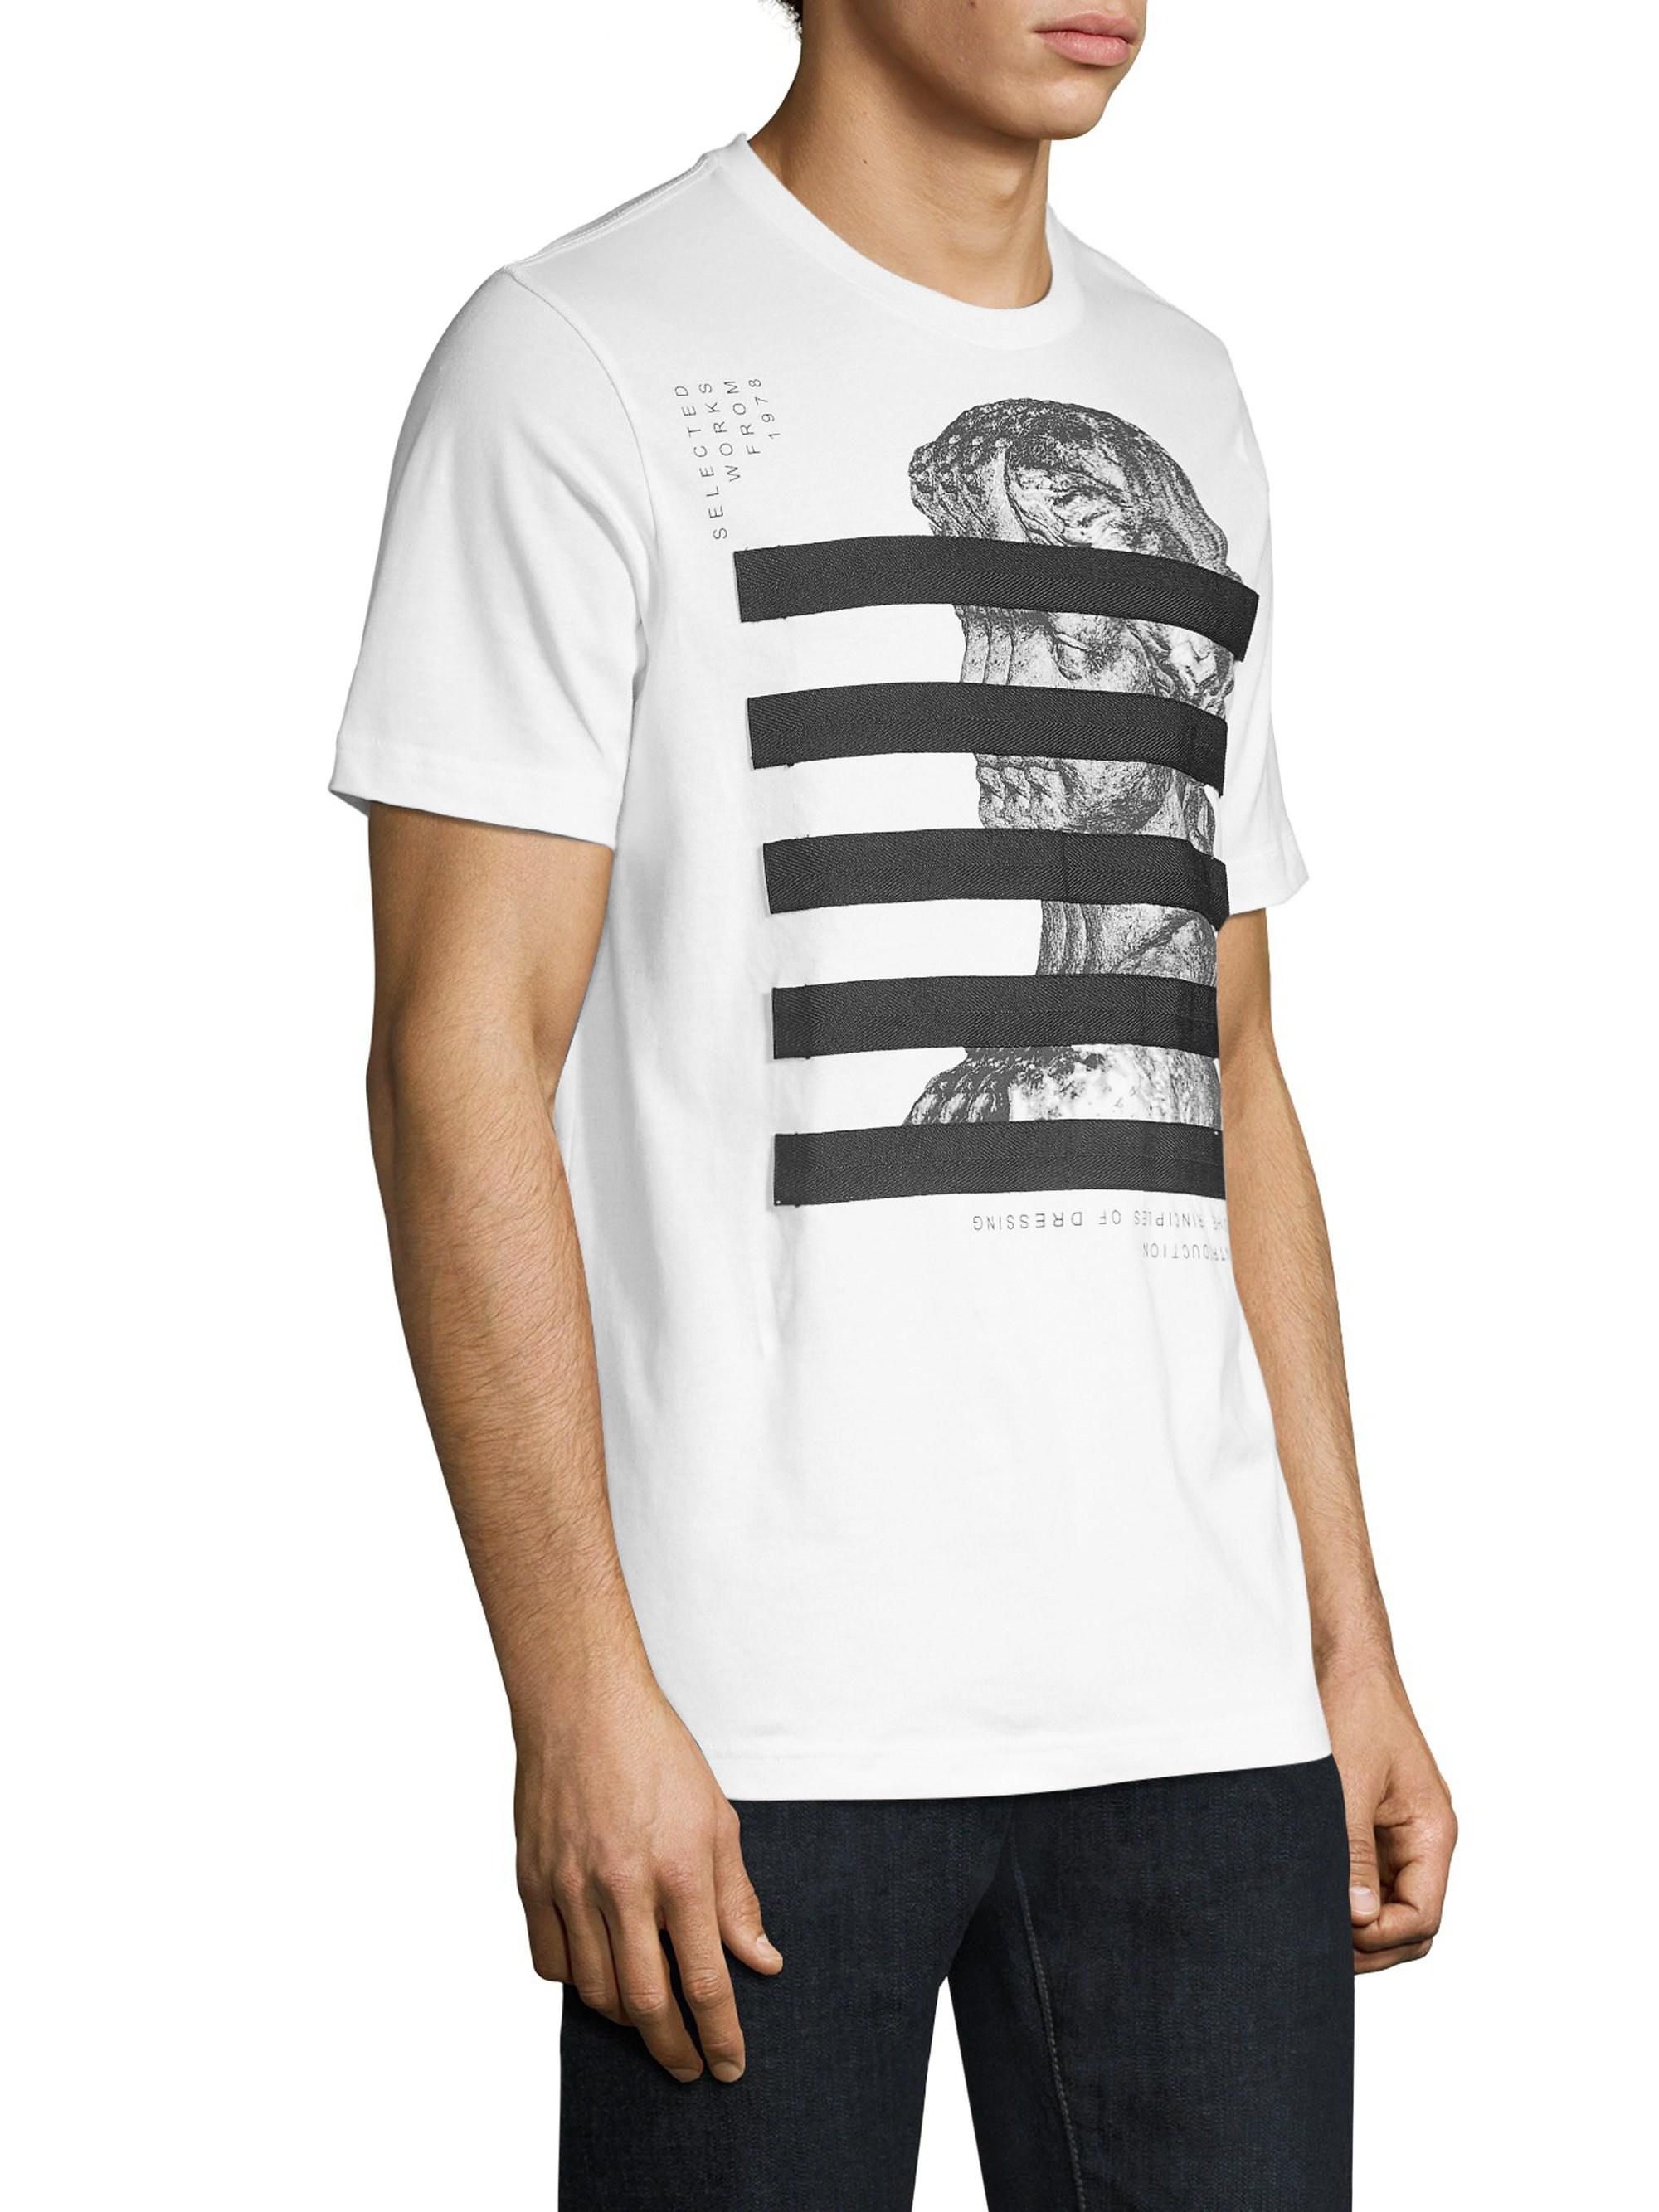 087cf468 DIESEL Just-yo Graphic T-shirt in White for Men - Lyst